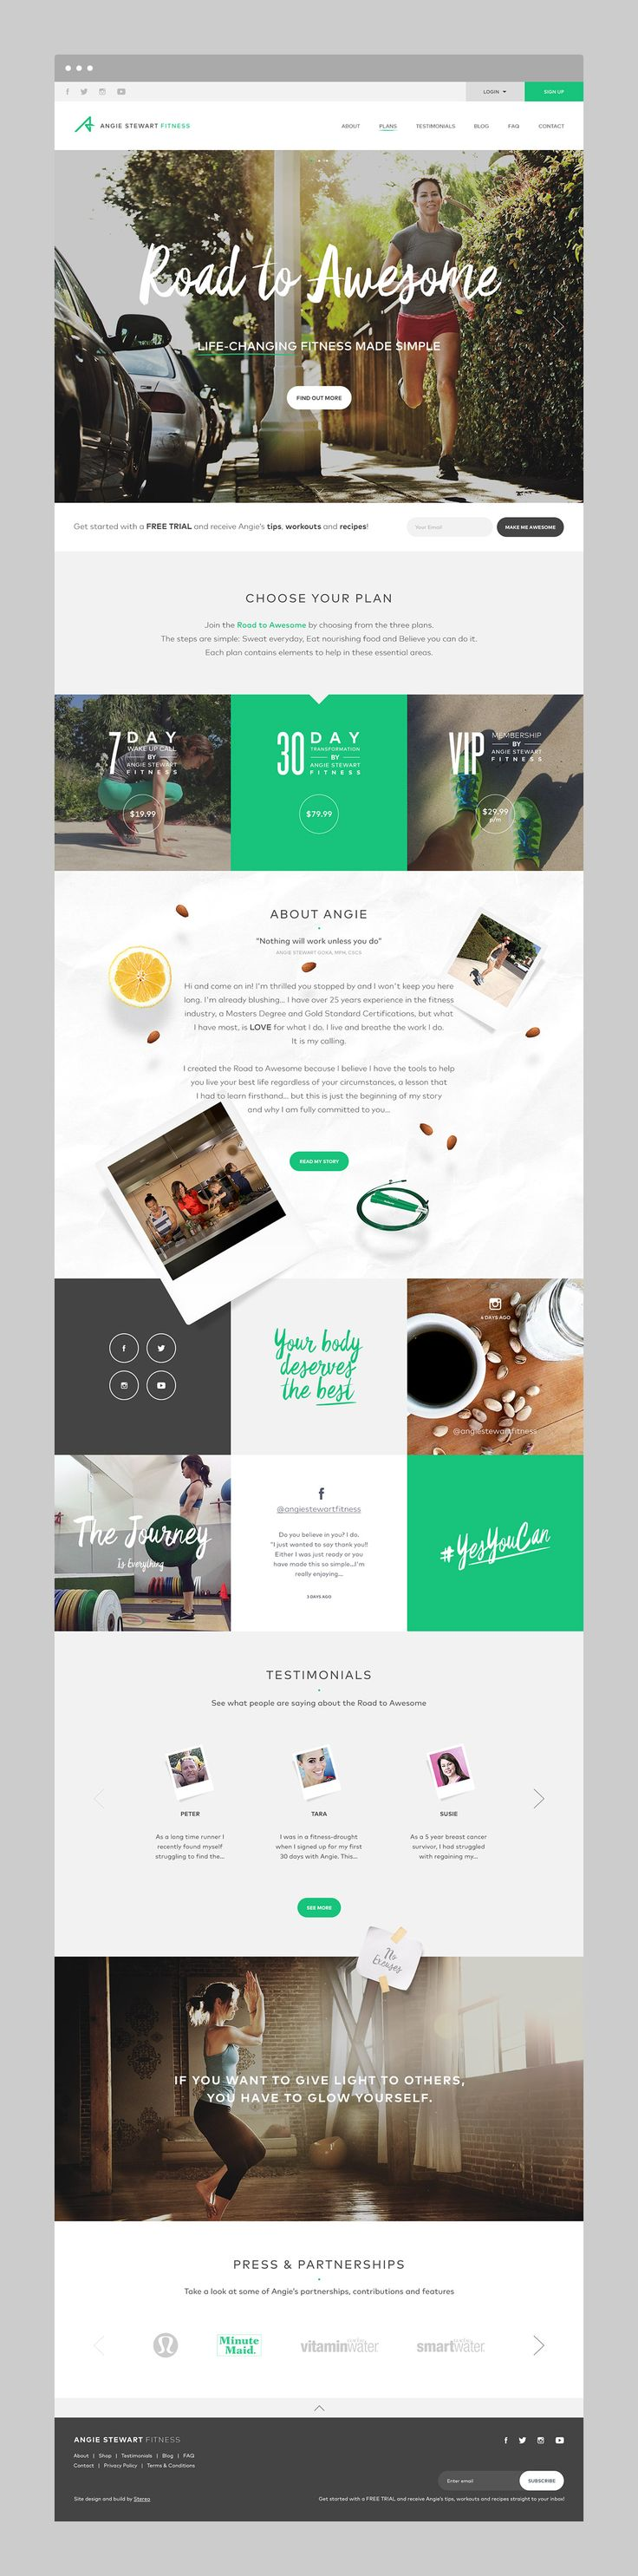 studiomh multi disciplinary design illustration studio angie stewart fitness tap the pin if you love super heroes too you will love these super - Web Page Design Ideas